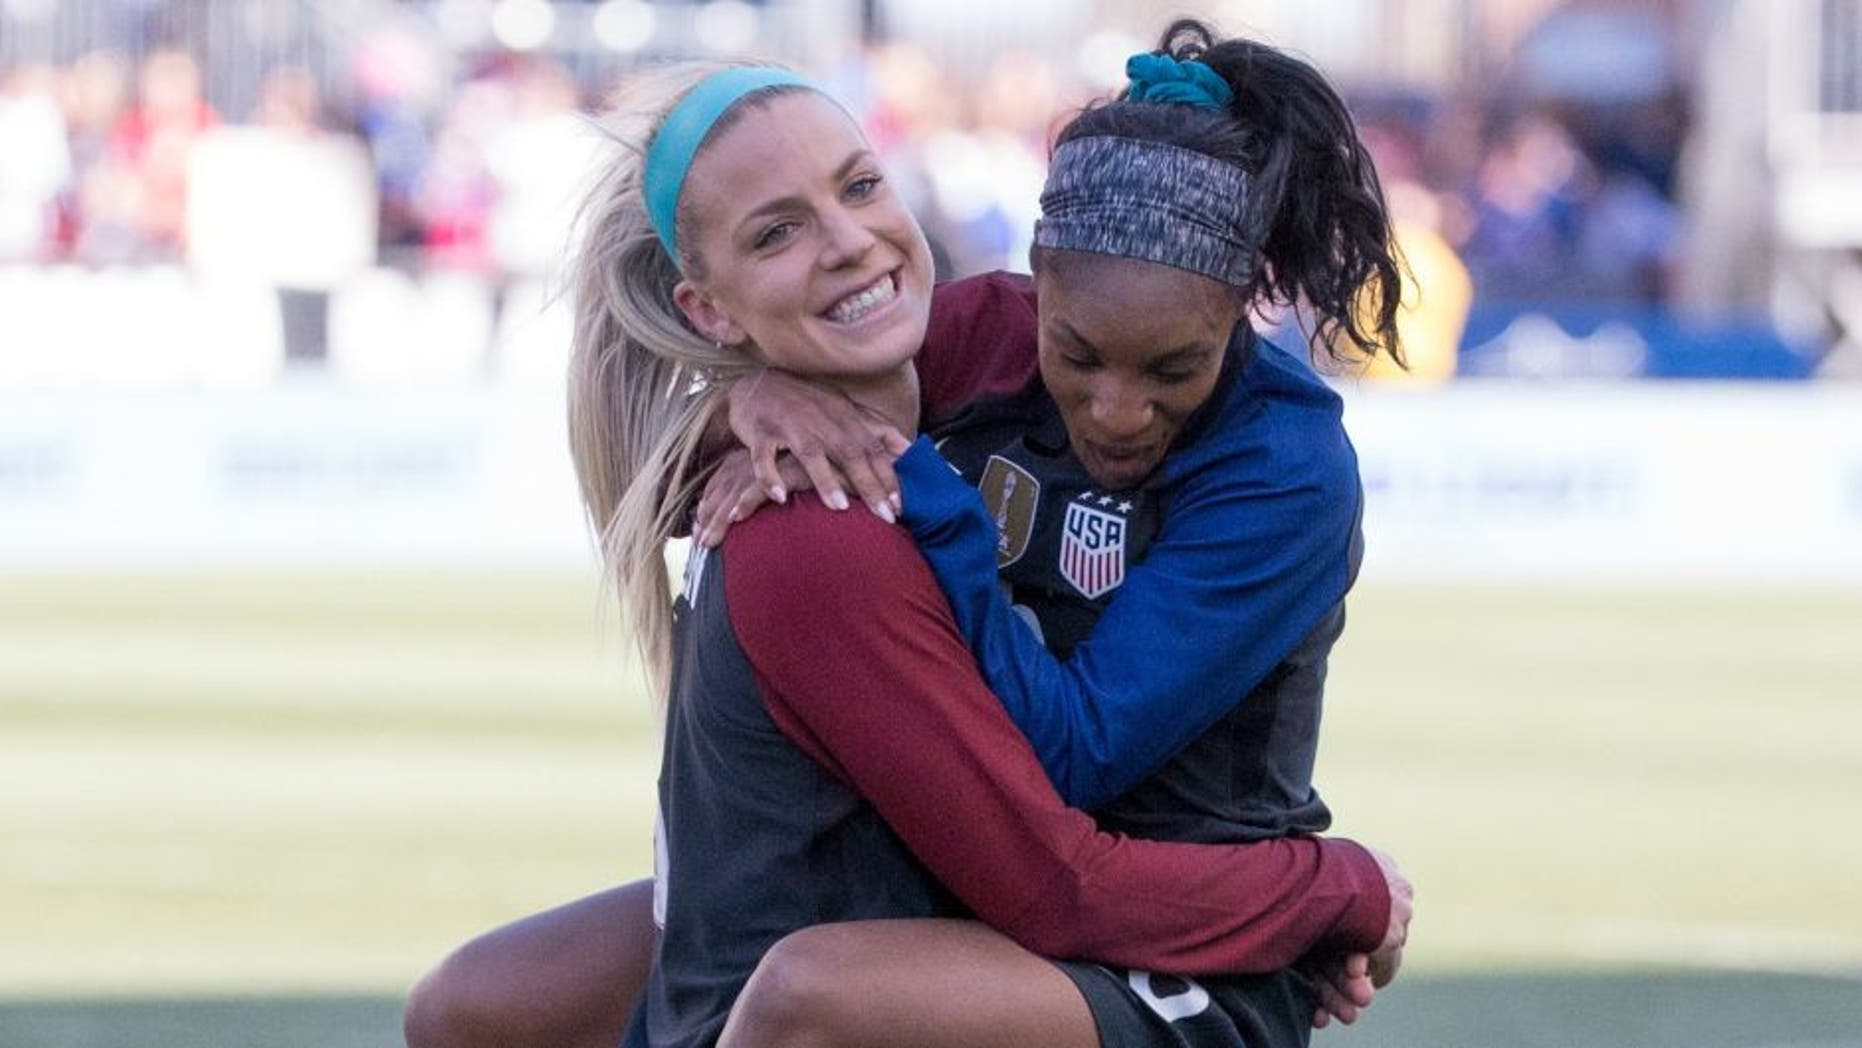 CHESTER, PENNSYLVANIA - APRIL 10: Julie Johnston #8 and Crystal Dunn #16 of the United States hug each other after the match against Colombia at Talen Energy Stadium on April 10, 2016 in Chester, Pennsylvania. The United States defeated Colombia 3-0. (Photo by Mitchell Leff/Getty Images) *** Local Caption *** Julie Johnston;Crystal Dunn